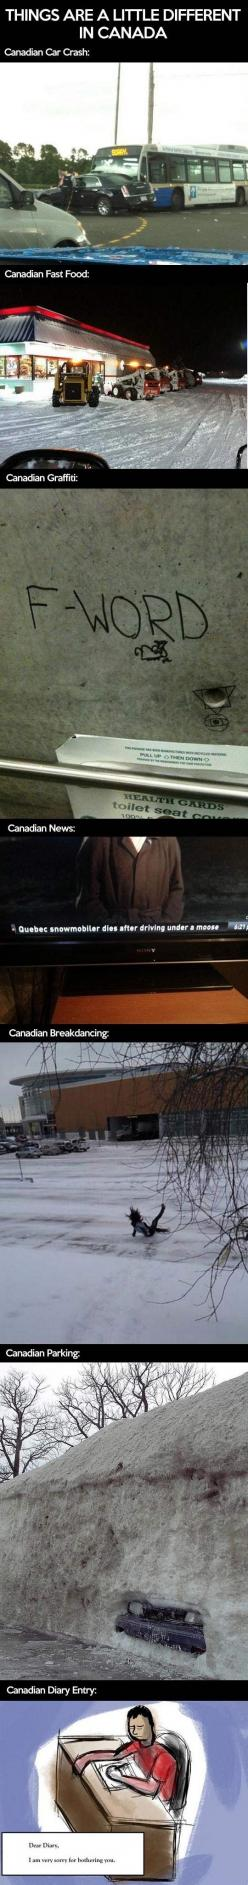 Oh just Canada.. // funny pictures - funny photos - funny images - funny pics - funny quotes - #lol #humor #funnypictures: Giggle, Canada, Canadian Stereotypes, Canadian Friends, Funny Stuff, Things, It S Funny, Canadian Thing